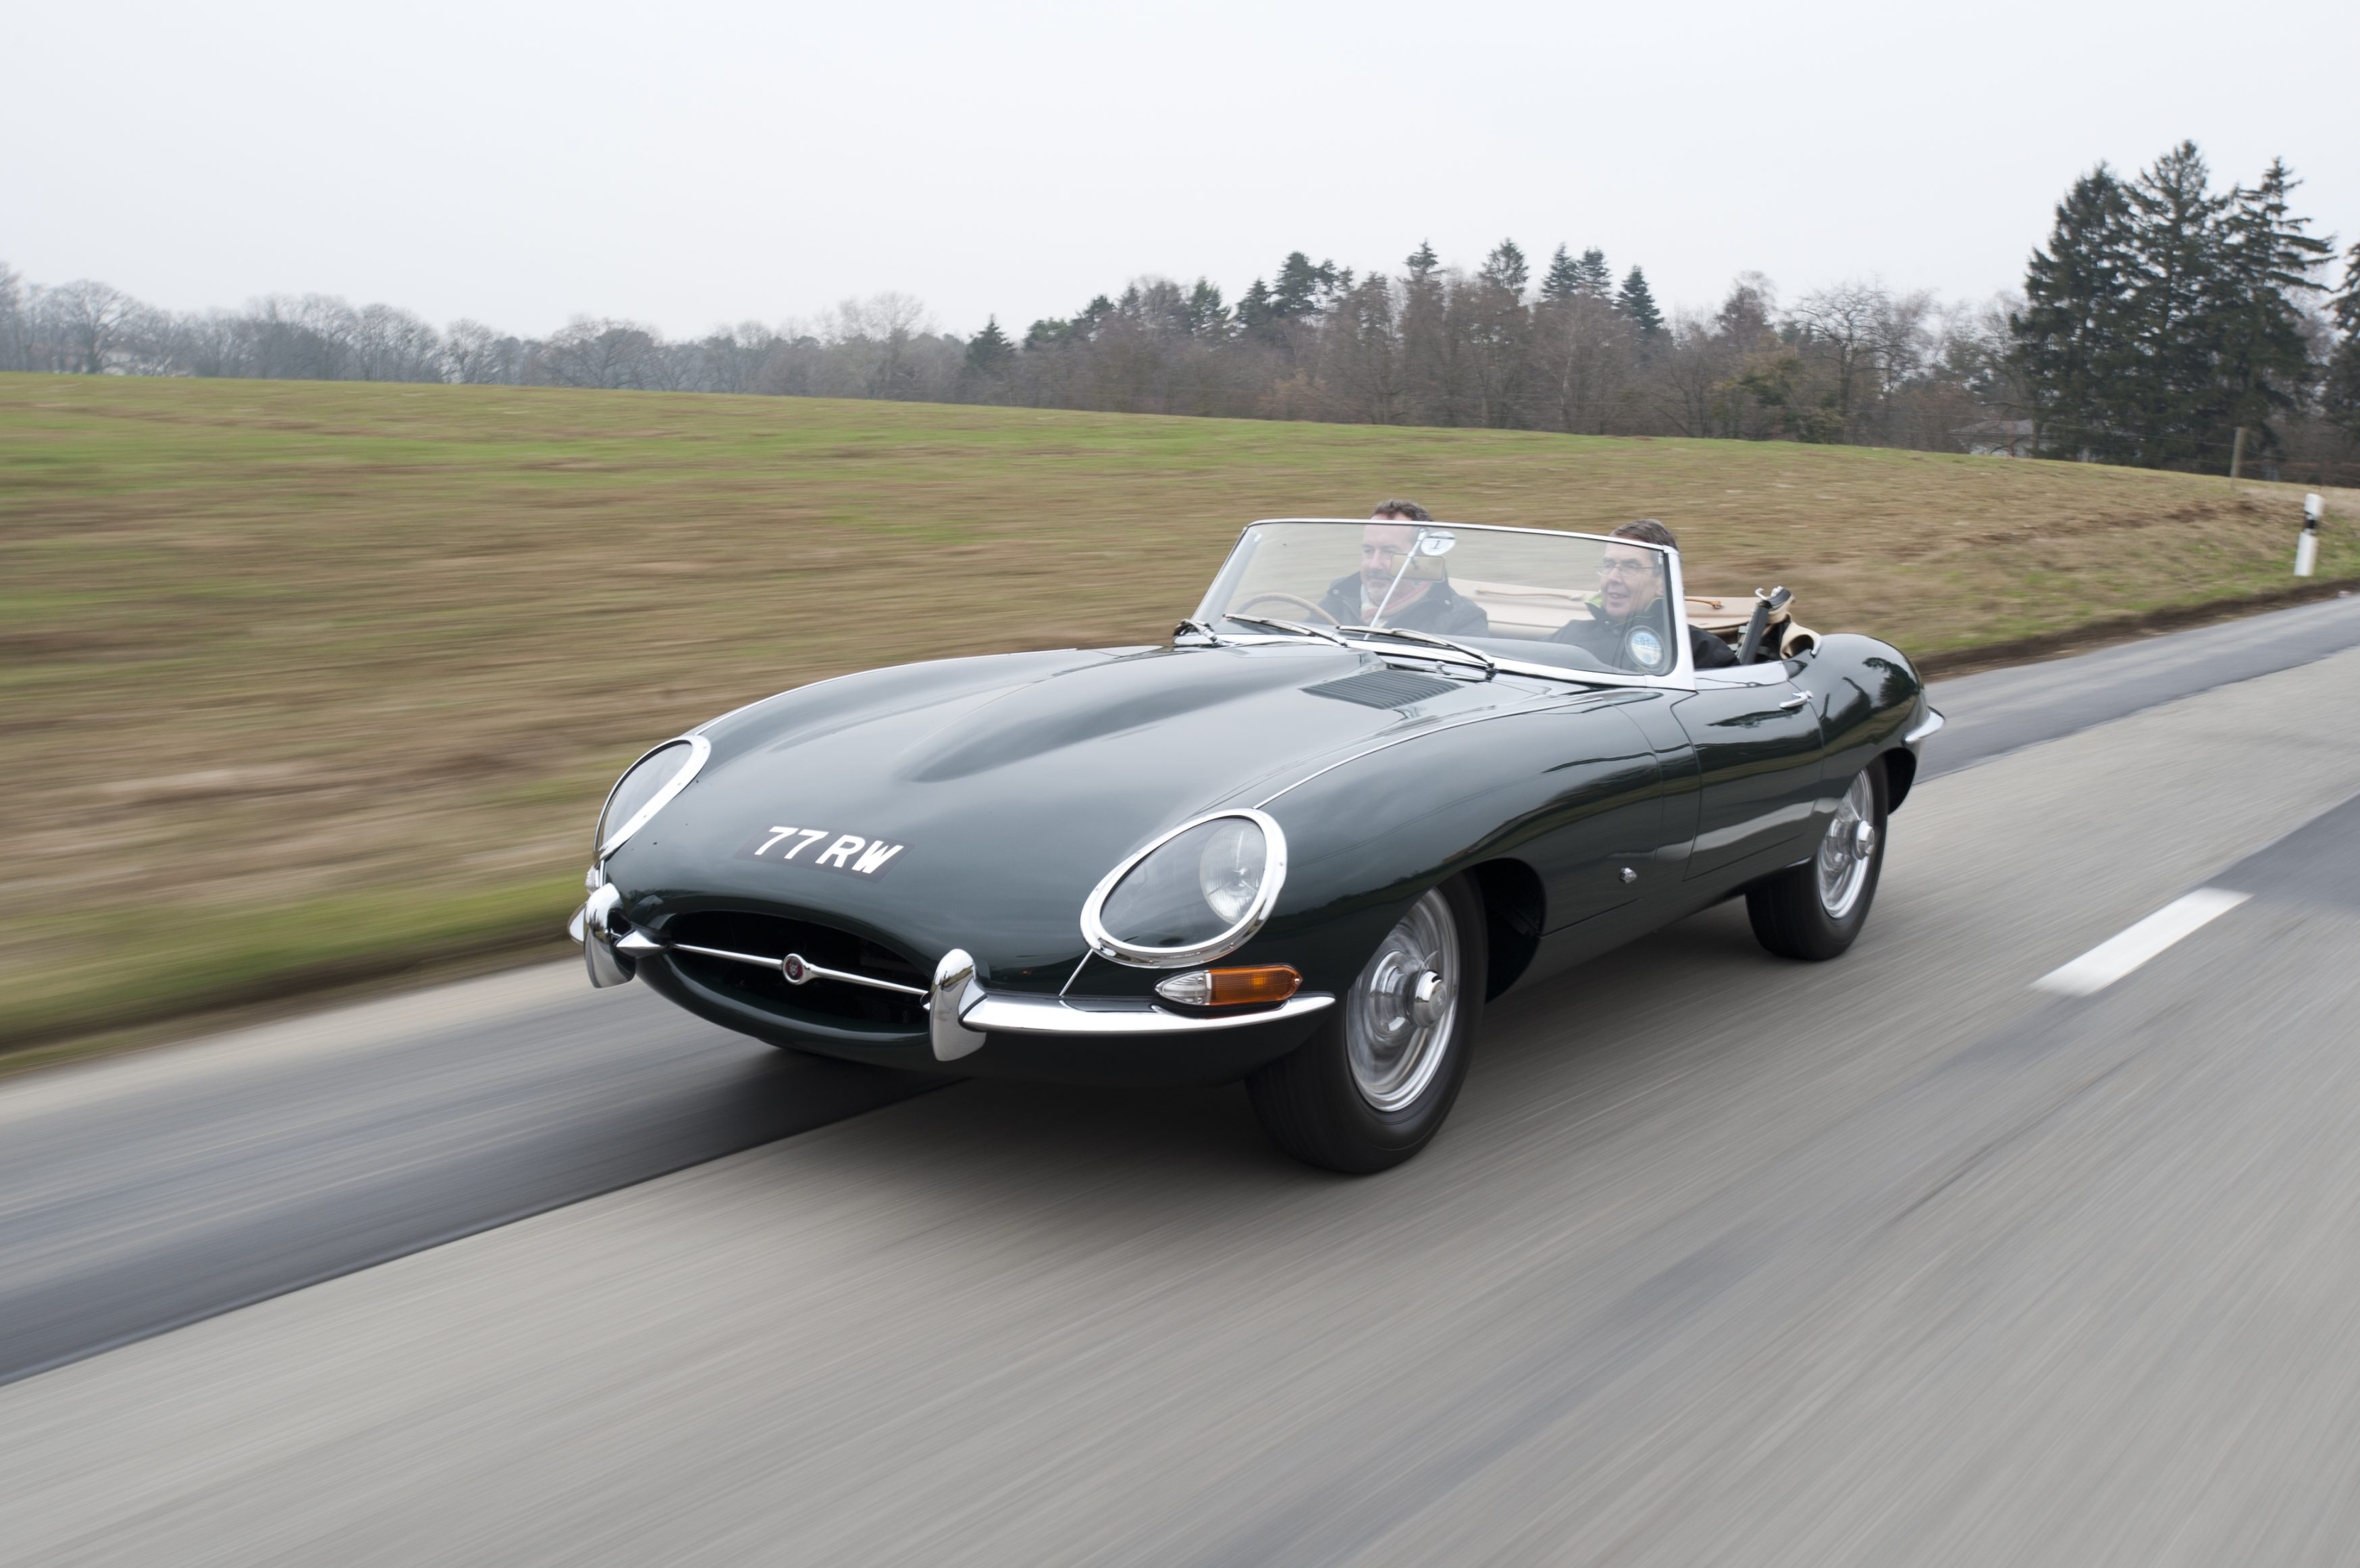 Jaguar E-Type driving at speed